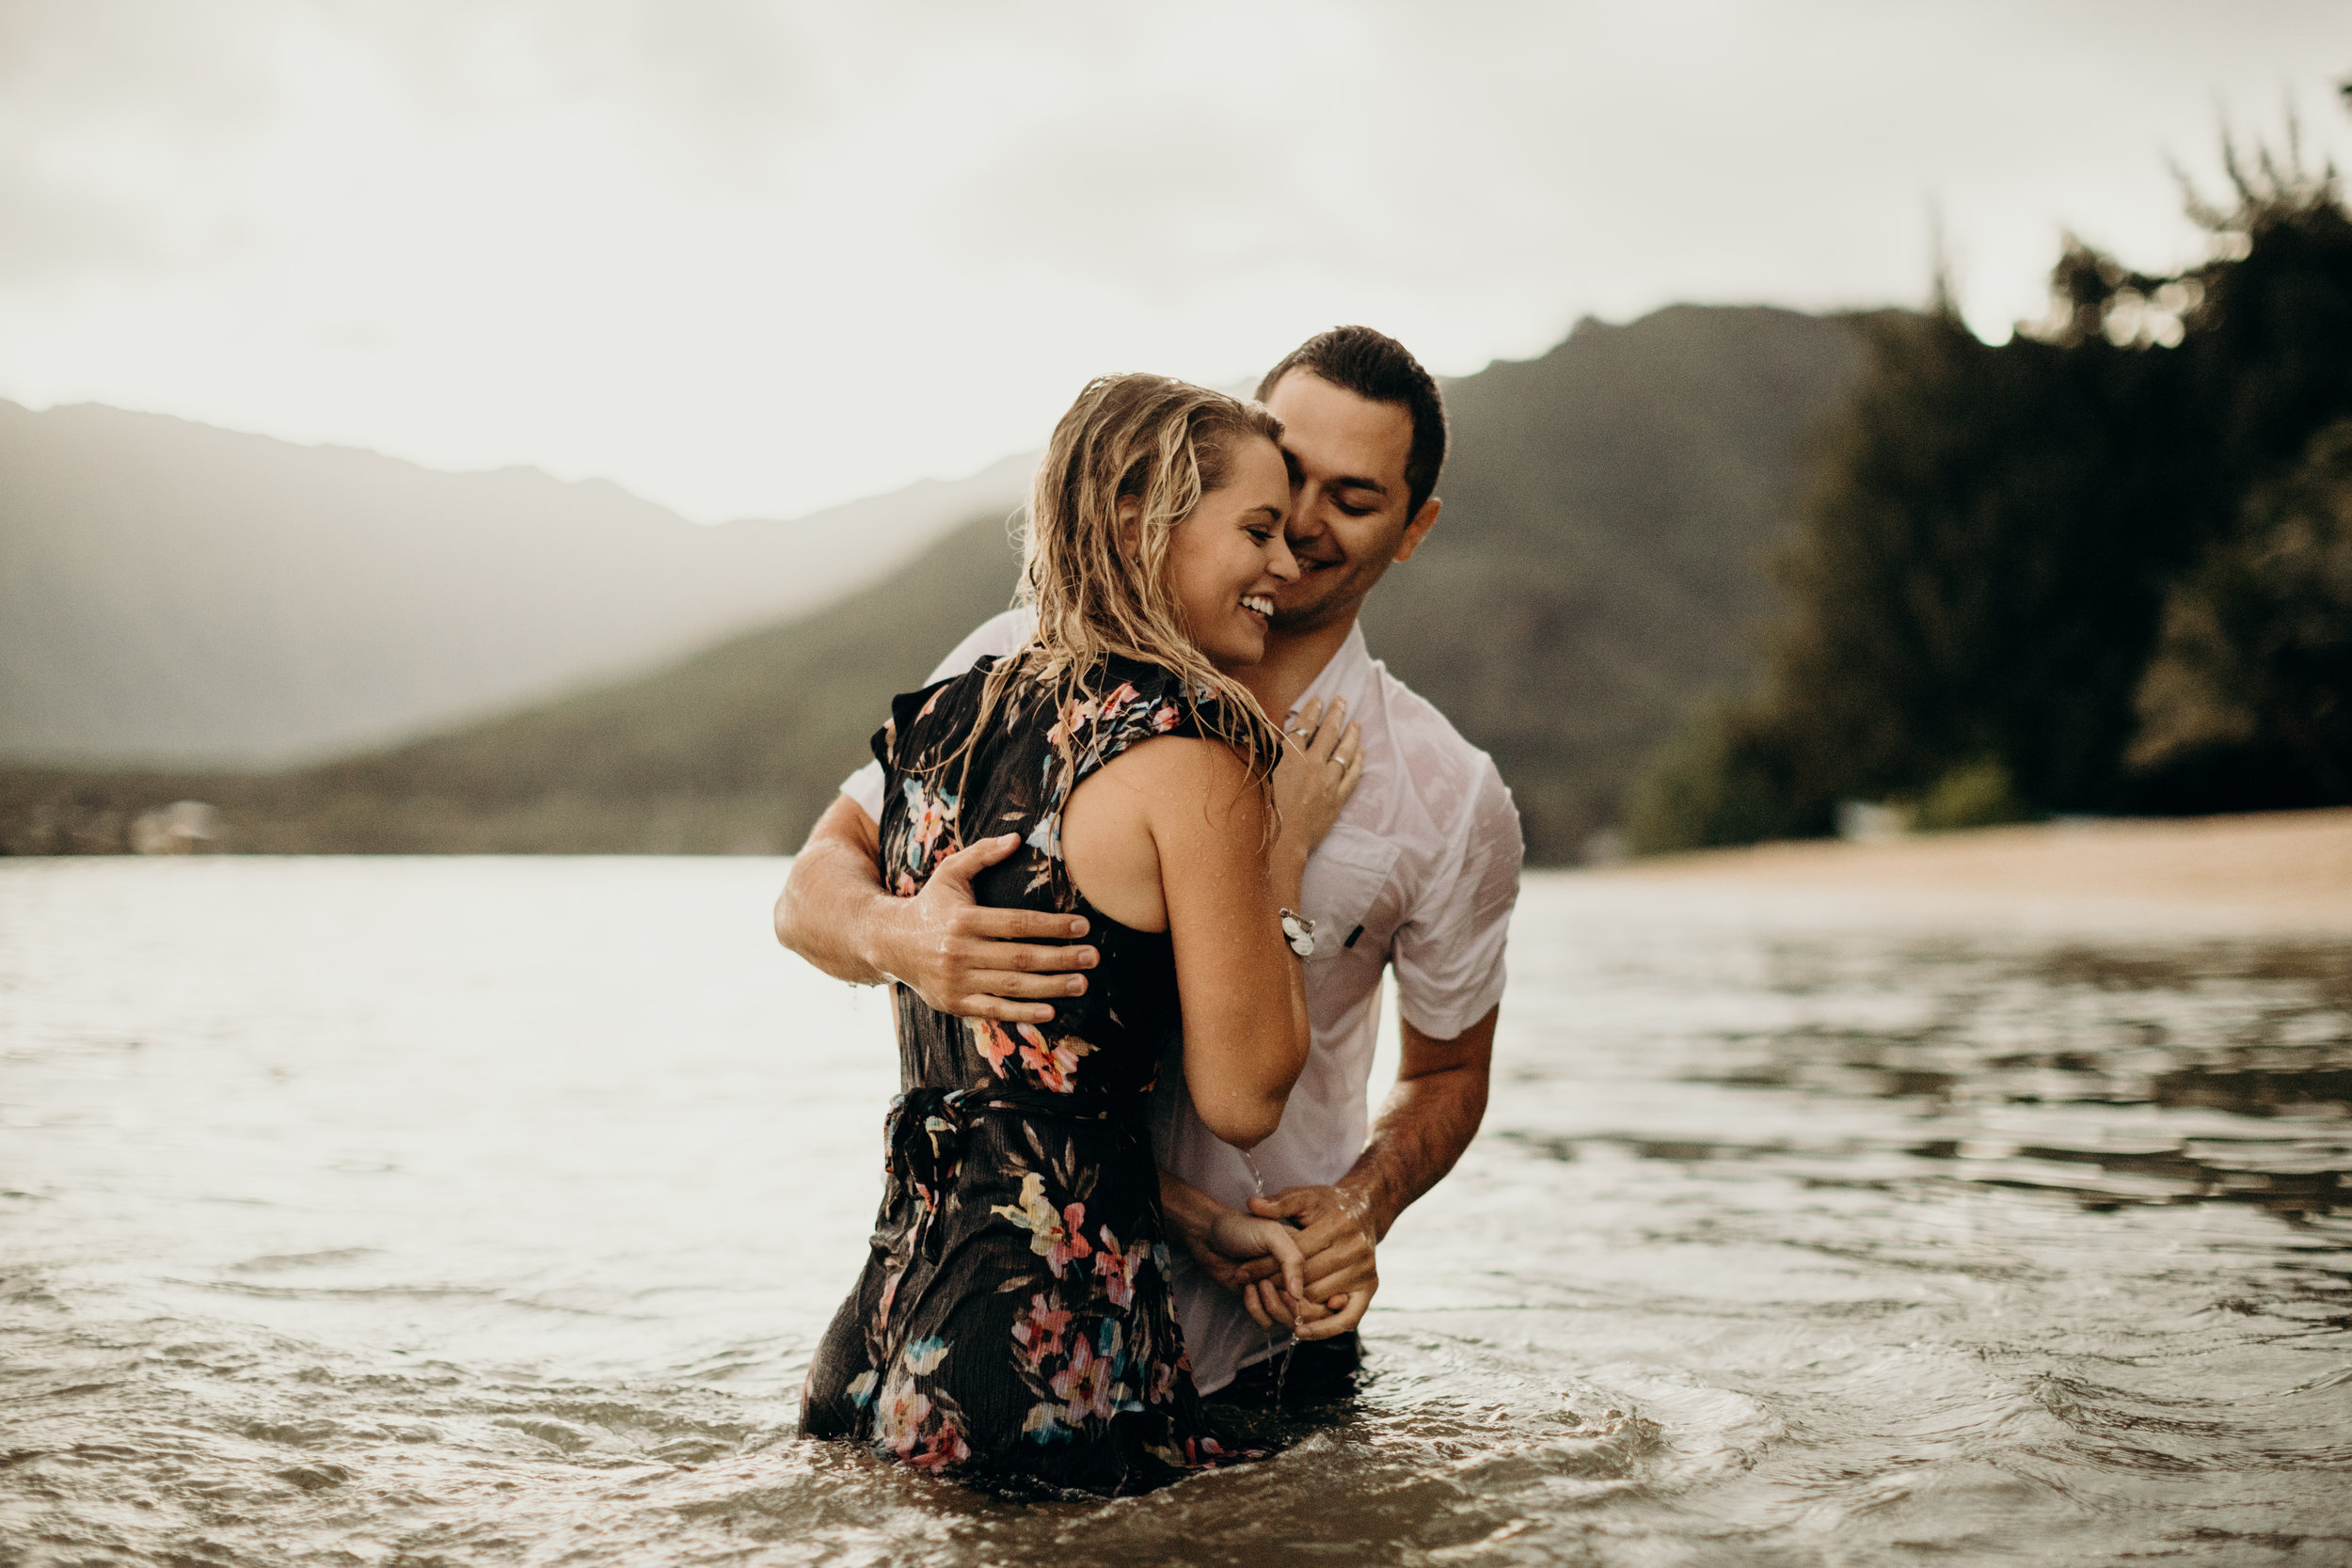 hawaii-engagement-photographer-keani-bakula-kualoa-ranch-32.jpg